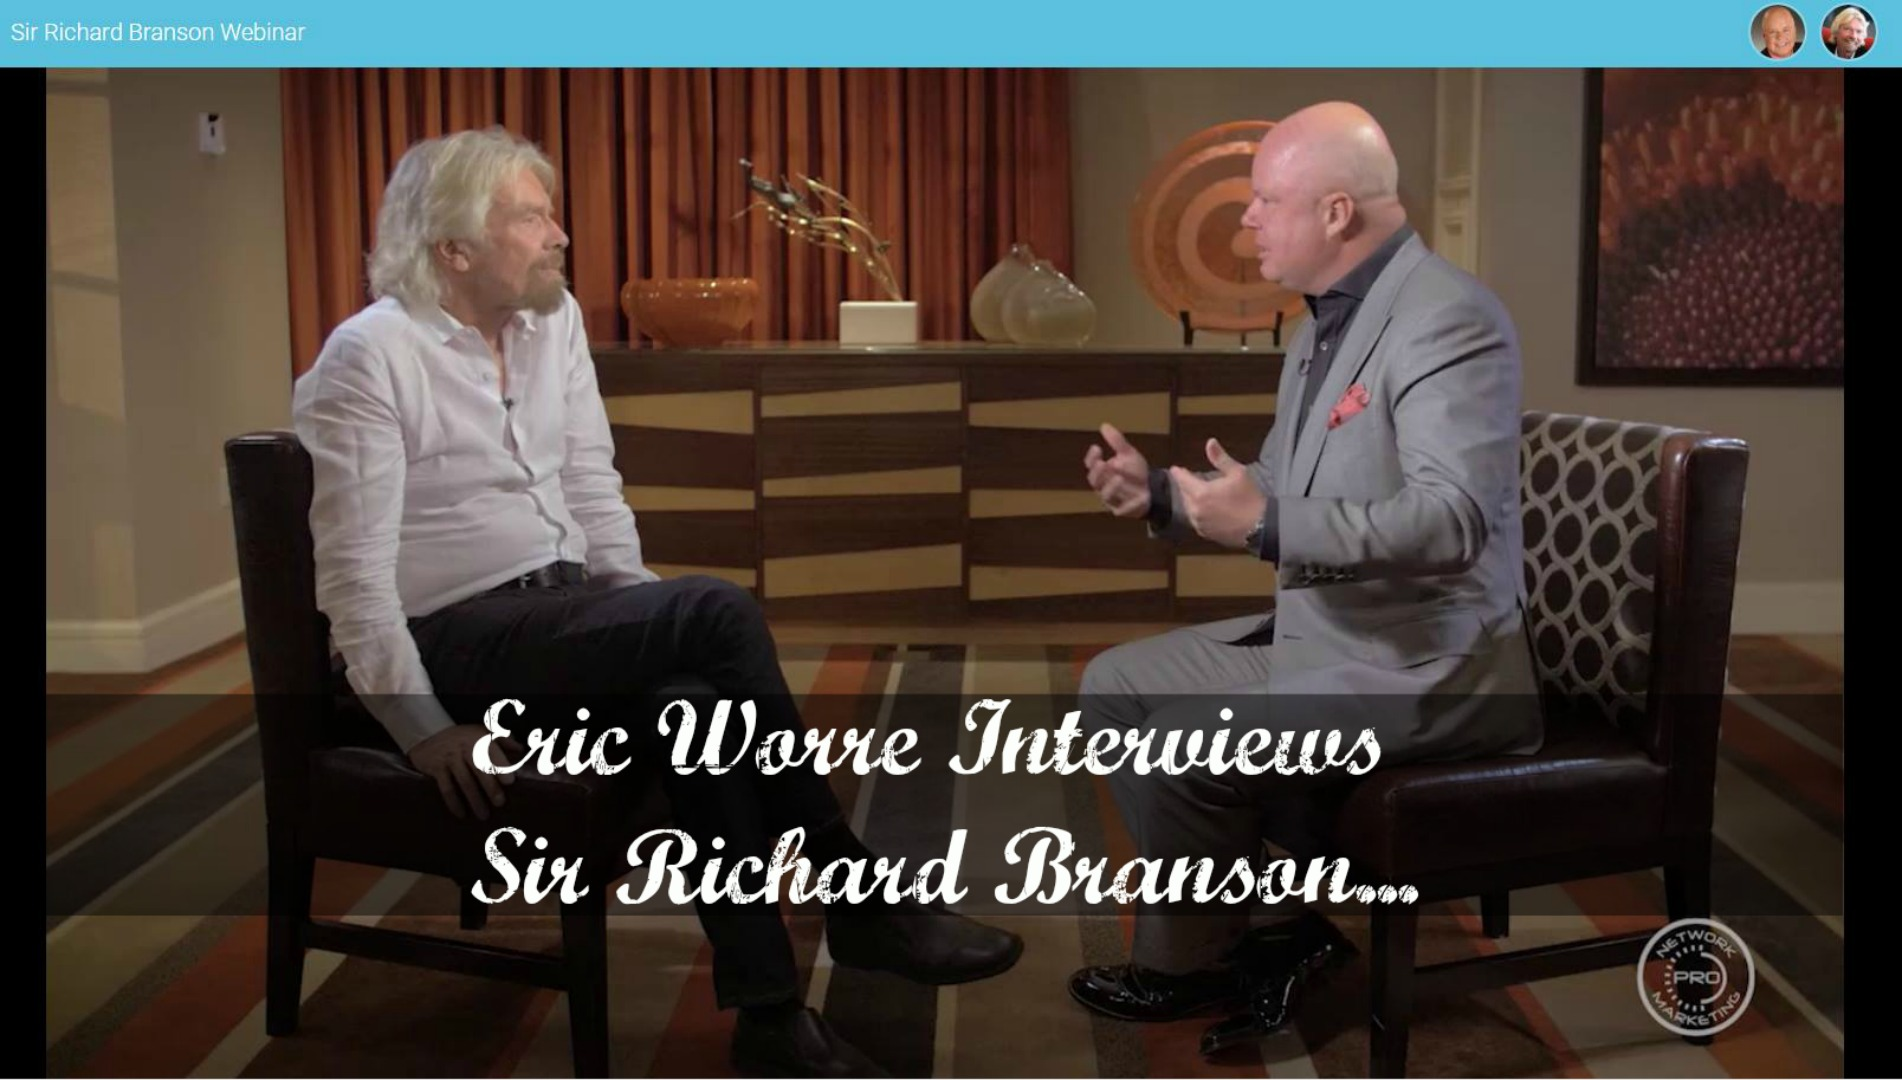 Richard Branson Network Marketing Interview Recap